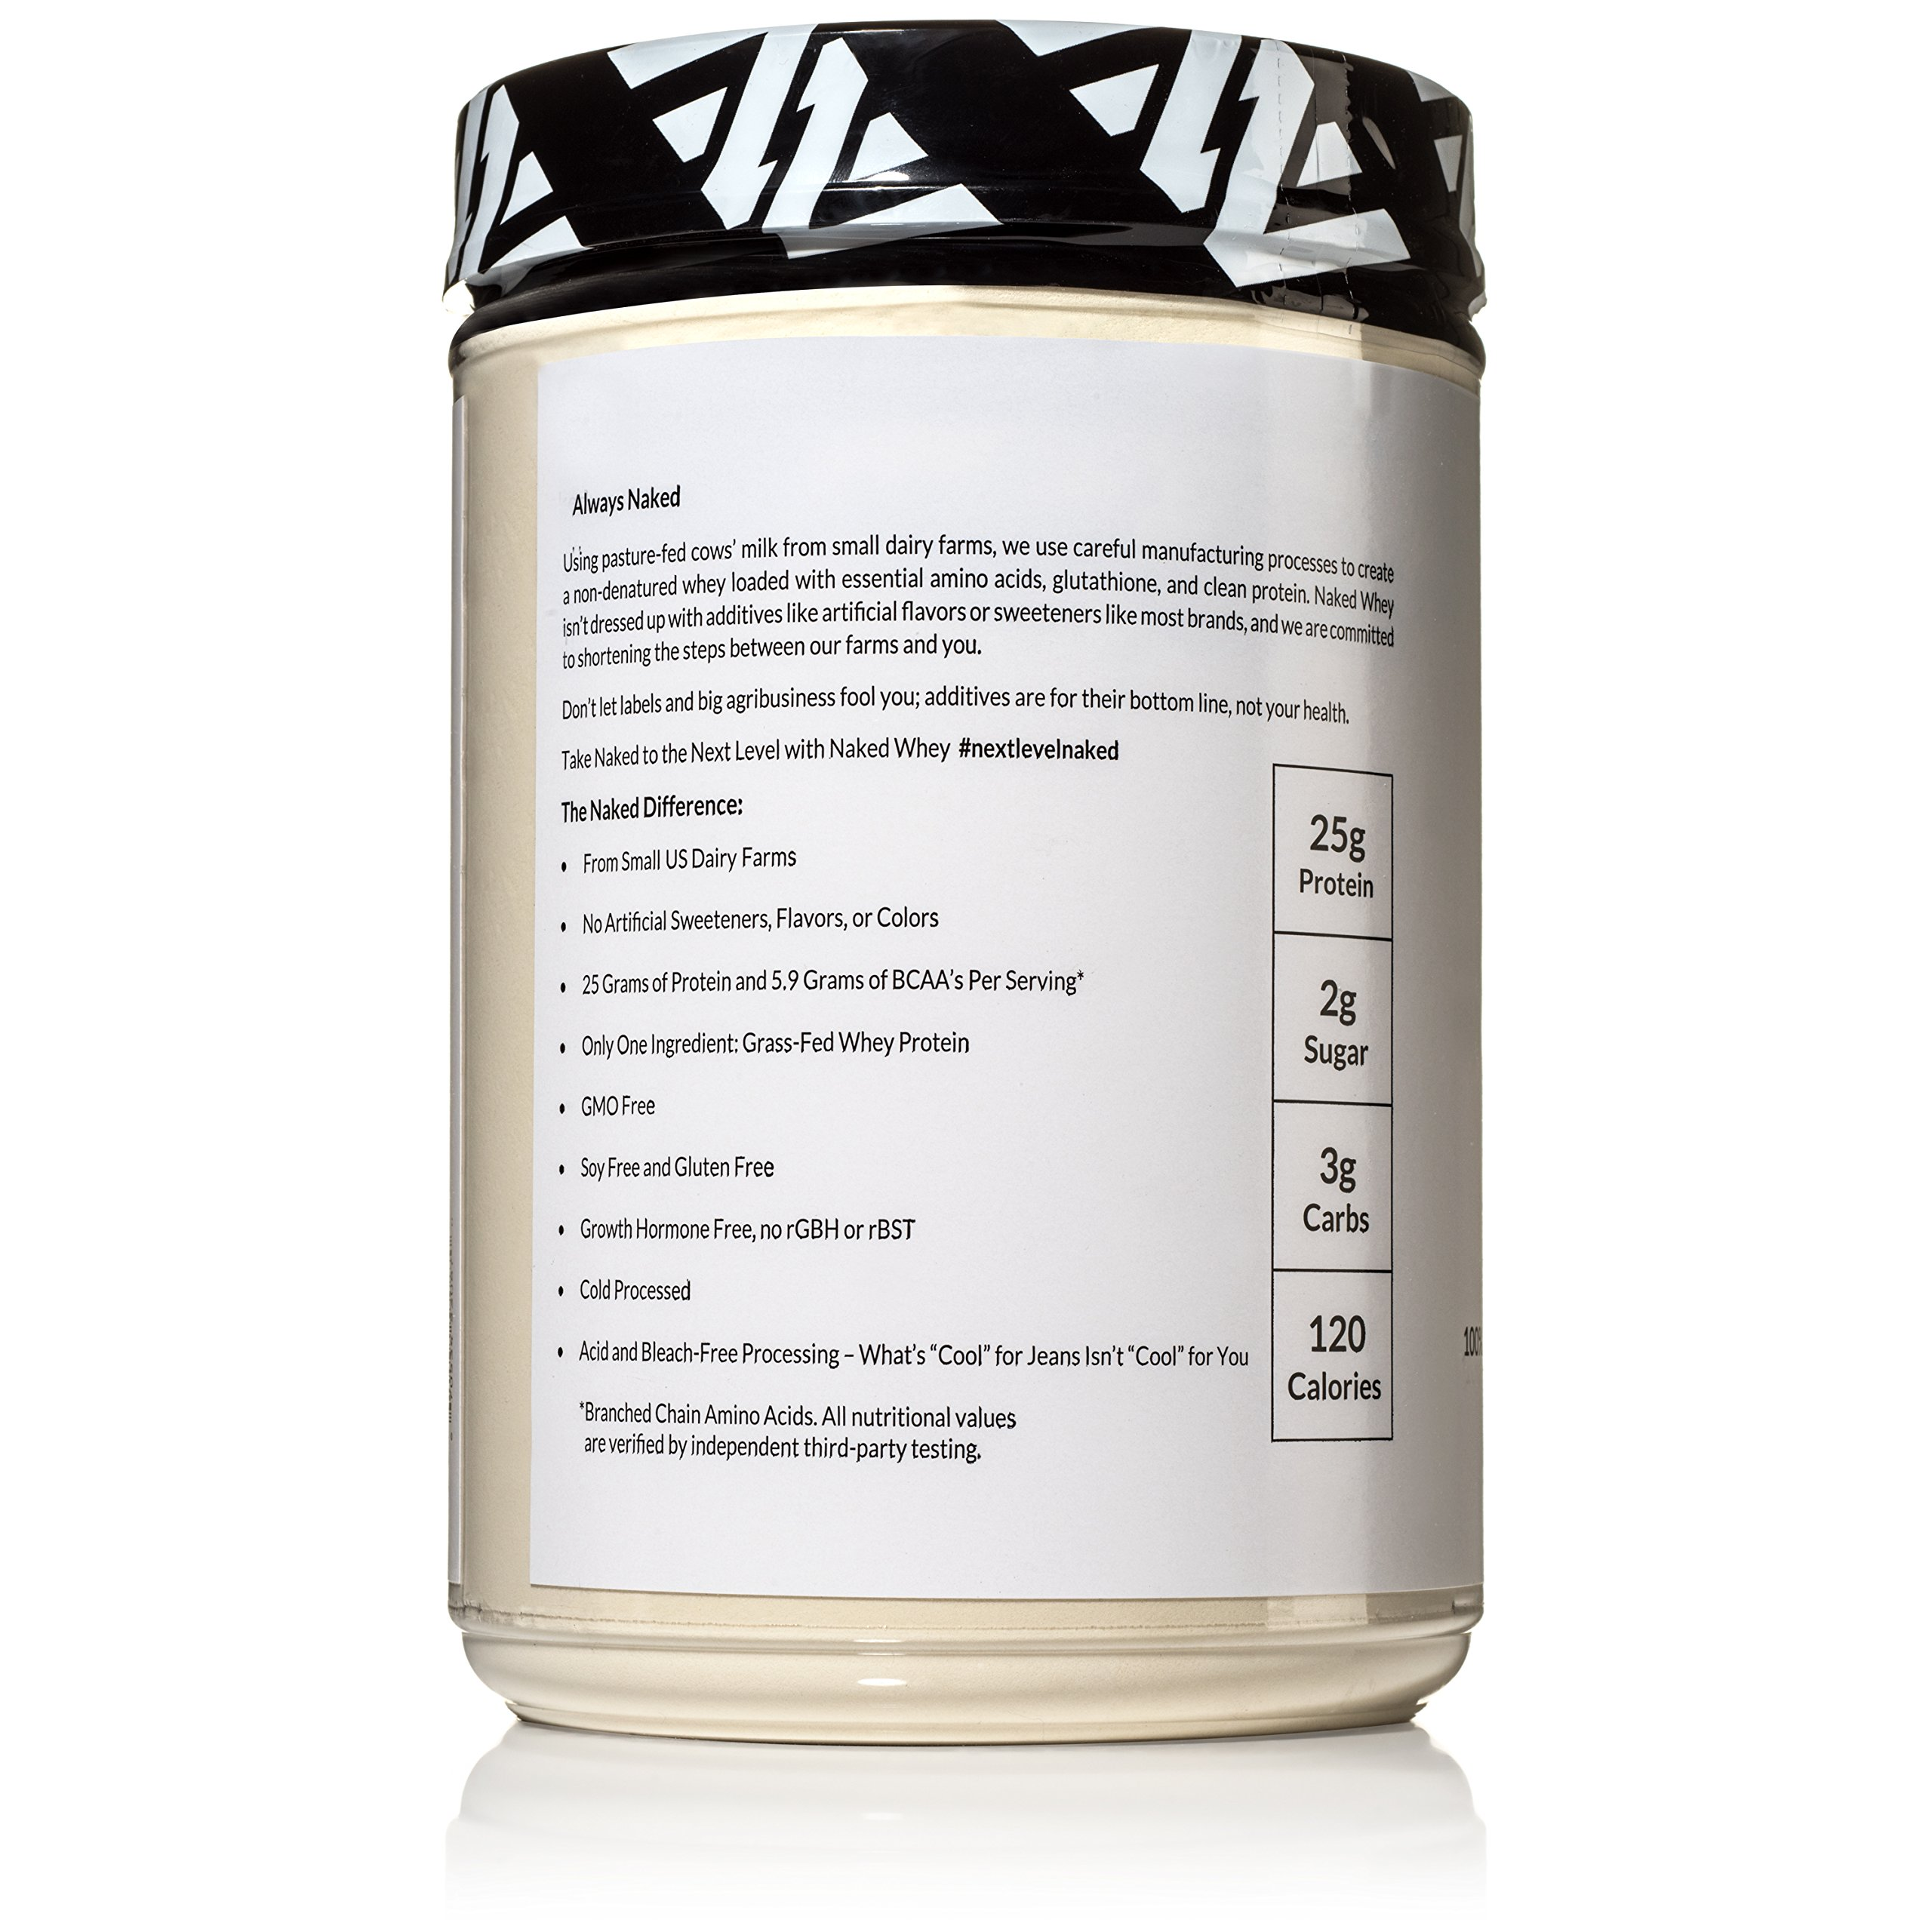 Naked WHEY 1LB 100% Grass Fed Unflavored Whey Protein Powder - US Farms, Only 1 Ingredient, Undenatured - No GMO, Soy or Gluten - No Preservatives - Promote Muscle Growth and Recovery - 15 Servings by NAKED nutrition (Image #4)